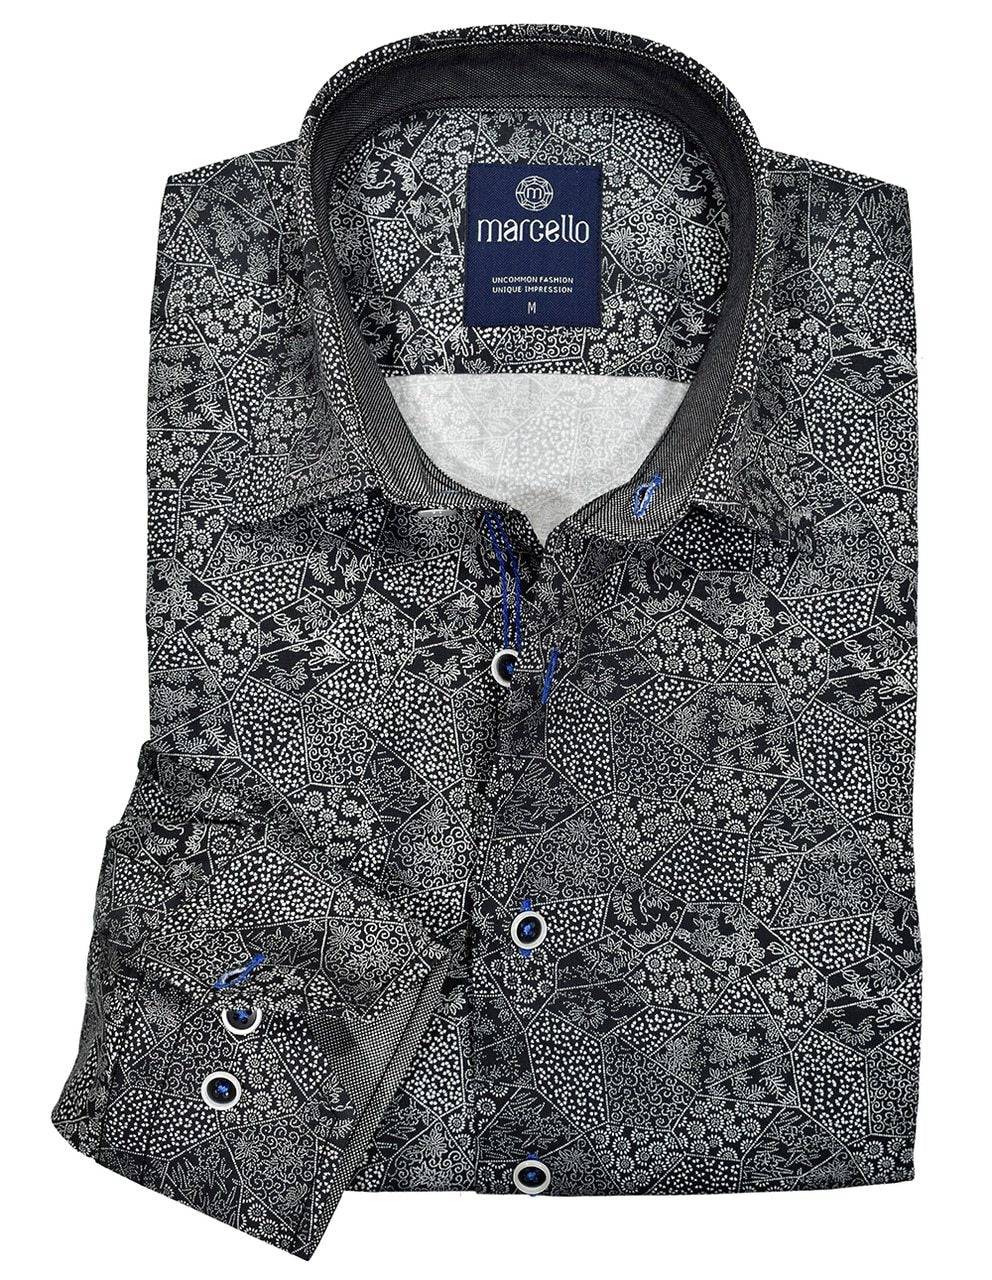 W1025 Midnight Puzzle Shirt - Marcello Sport